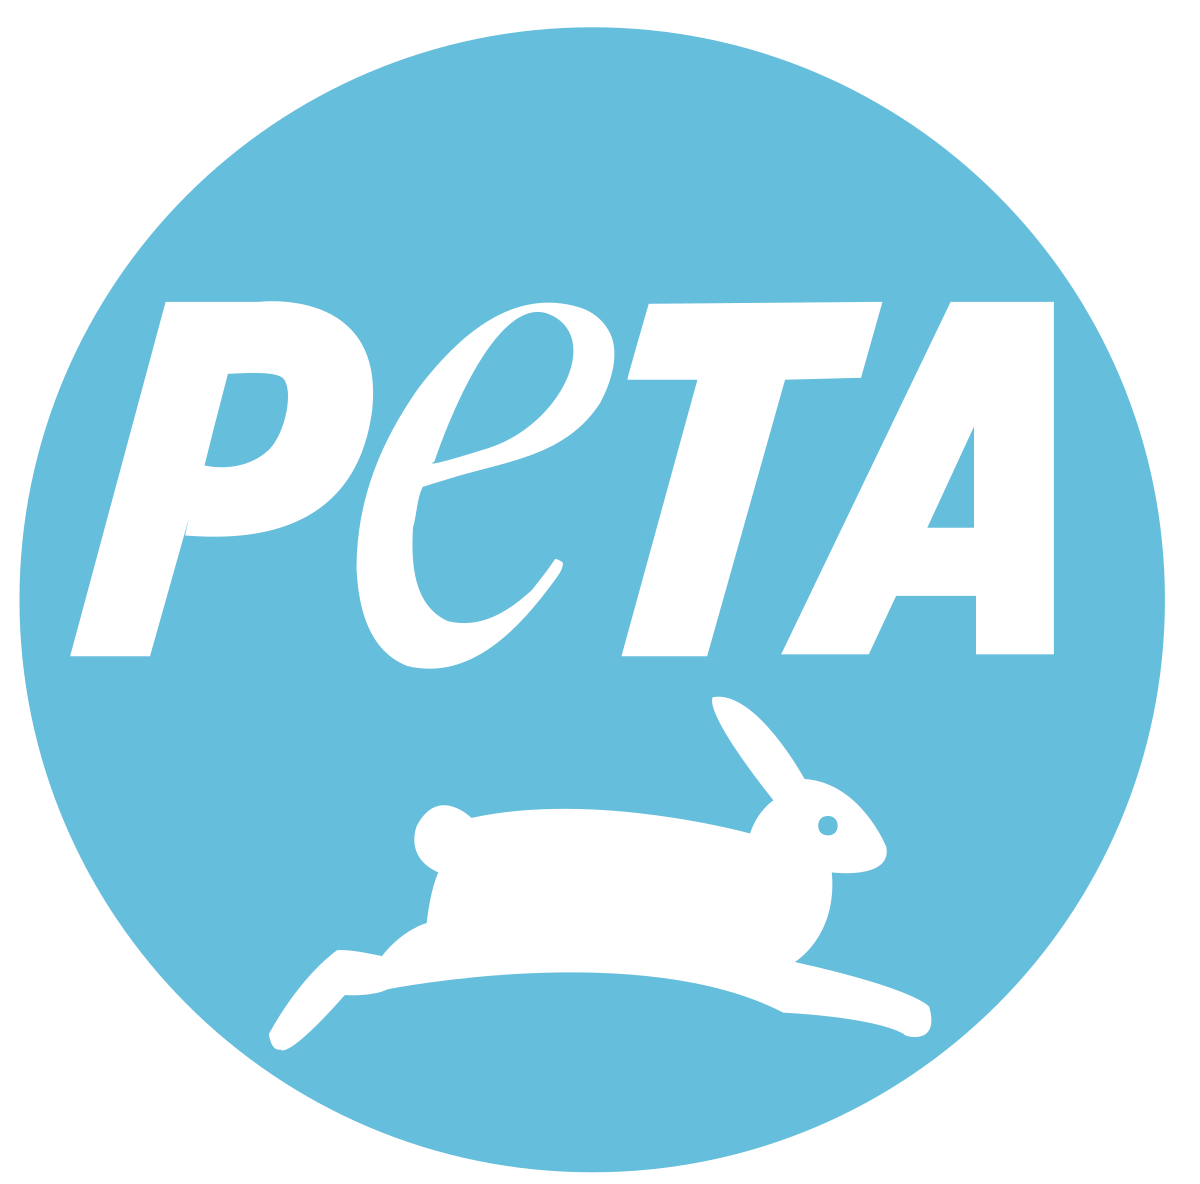 PETA focuses its attention on the four areas in which the largest numbers of animals suffer the most intensely for the longest periods of time: in laboratories, in the food industry, in the clothing trade, and in the entertainment industry.